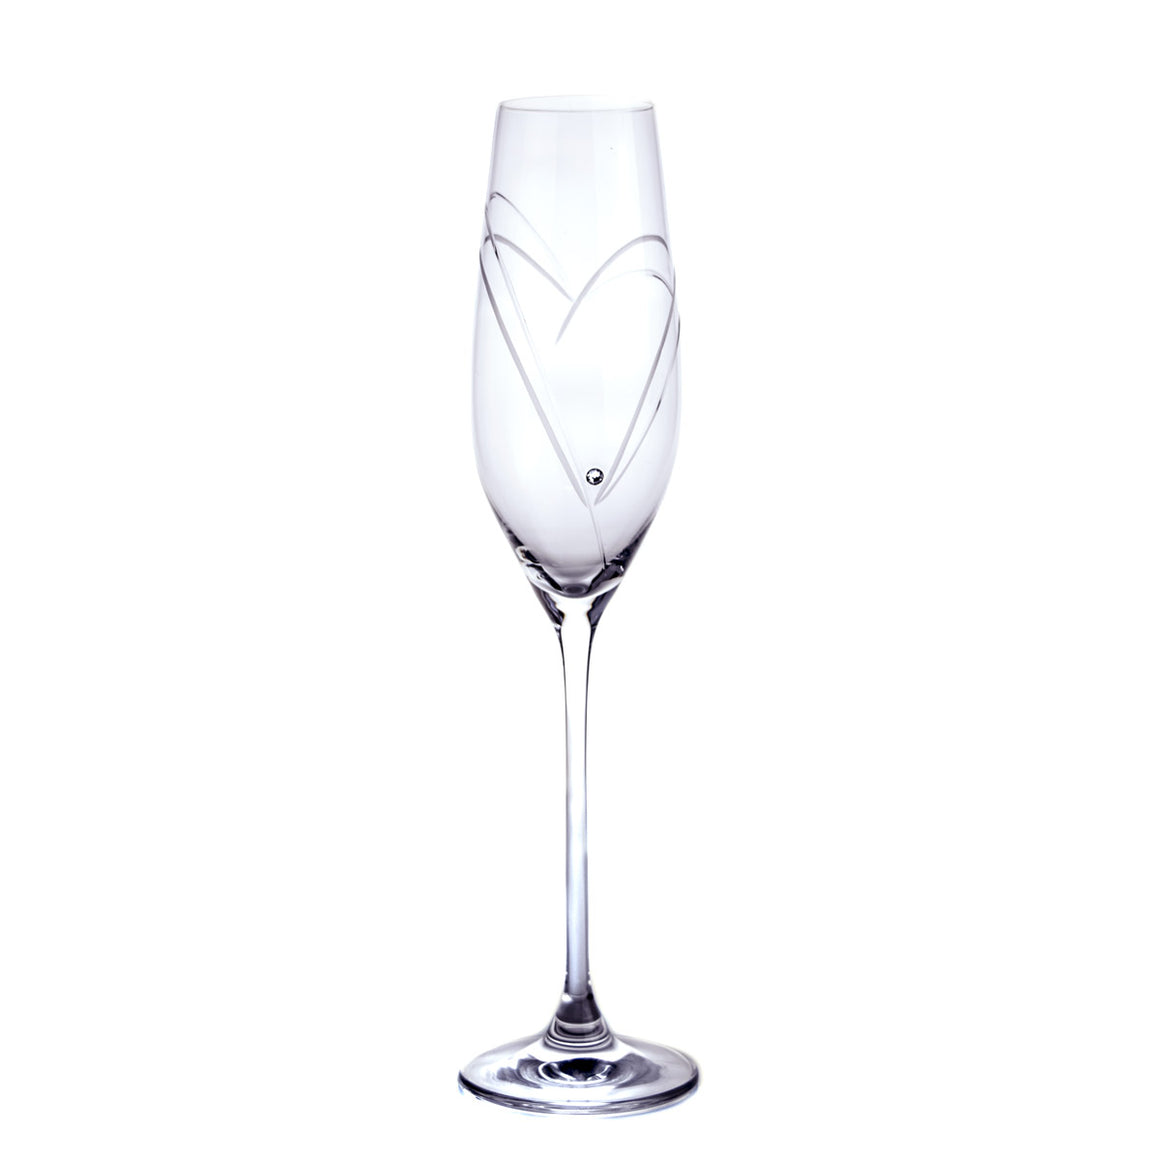 Nataly Swarovski Crystals Hand-made Champagne Glasses, Set of 2 - The Crystal Wonderland